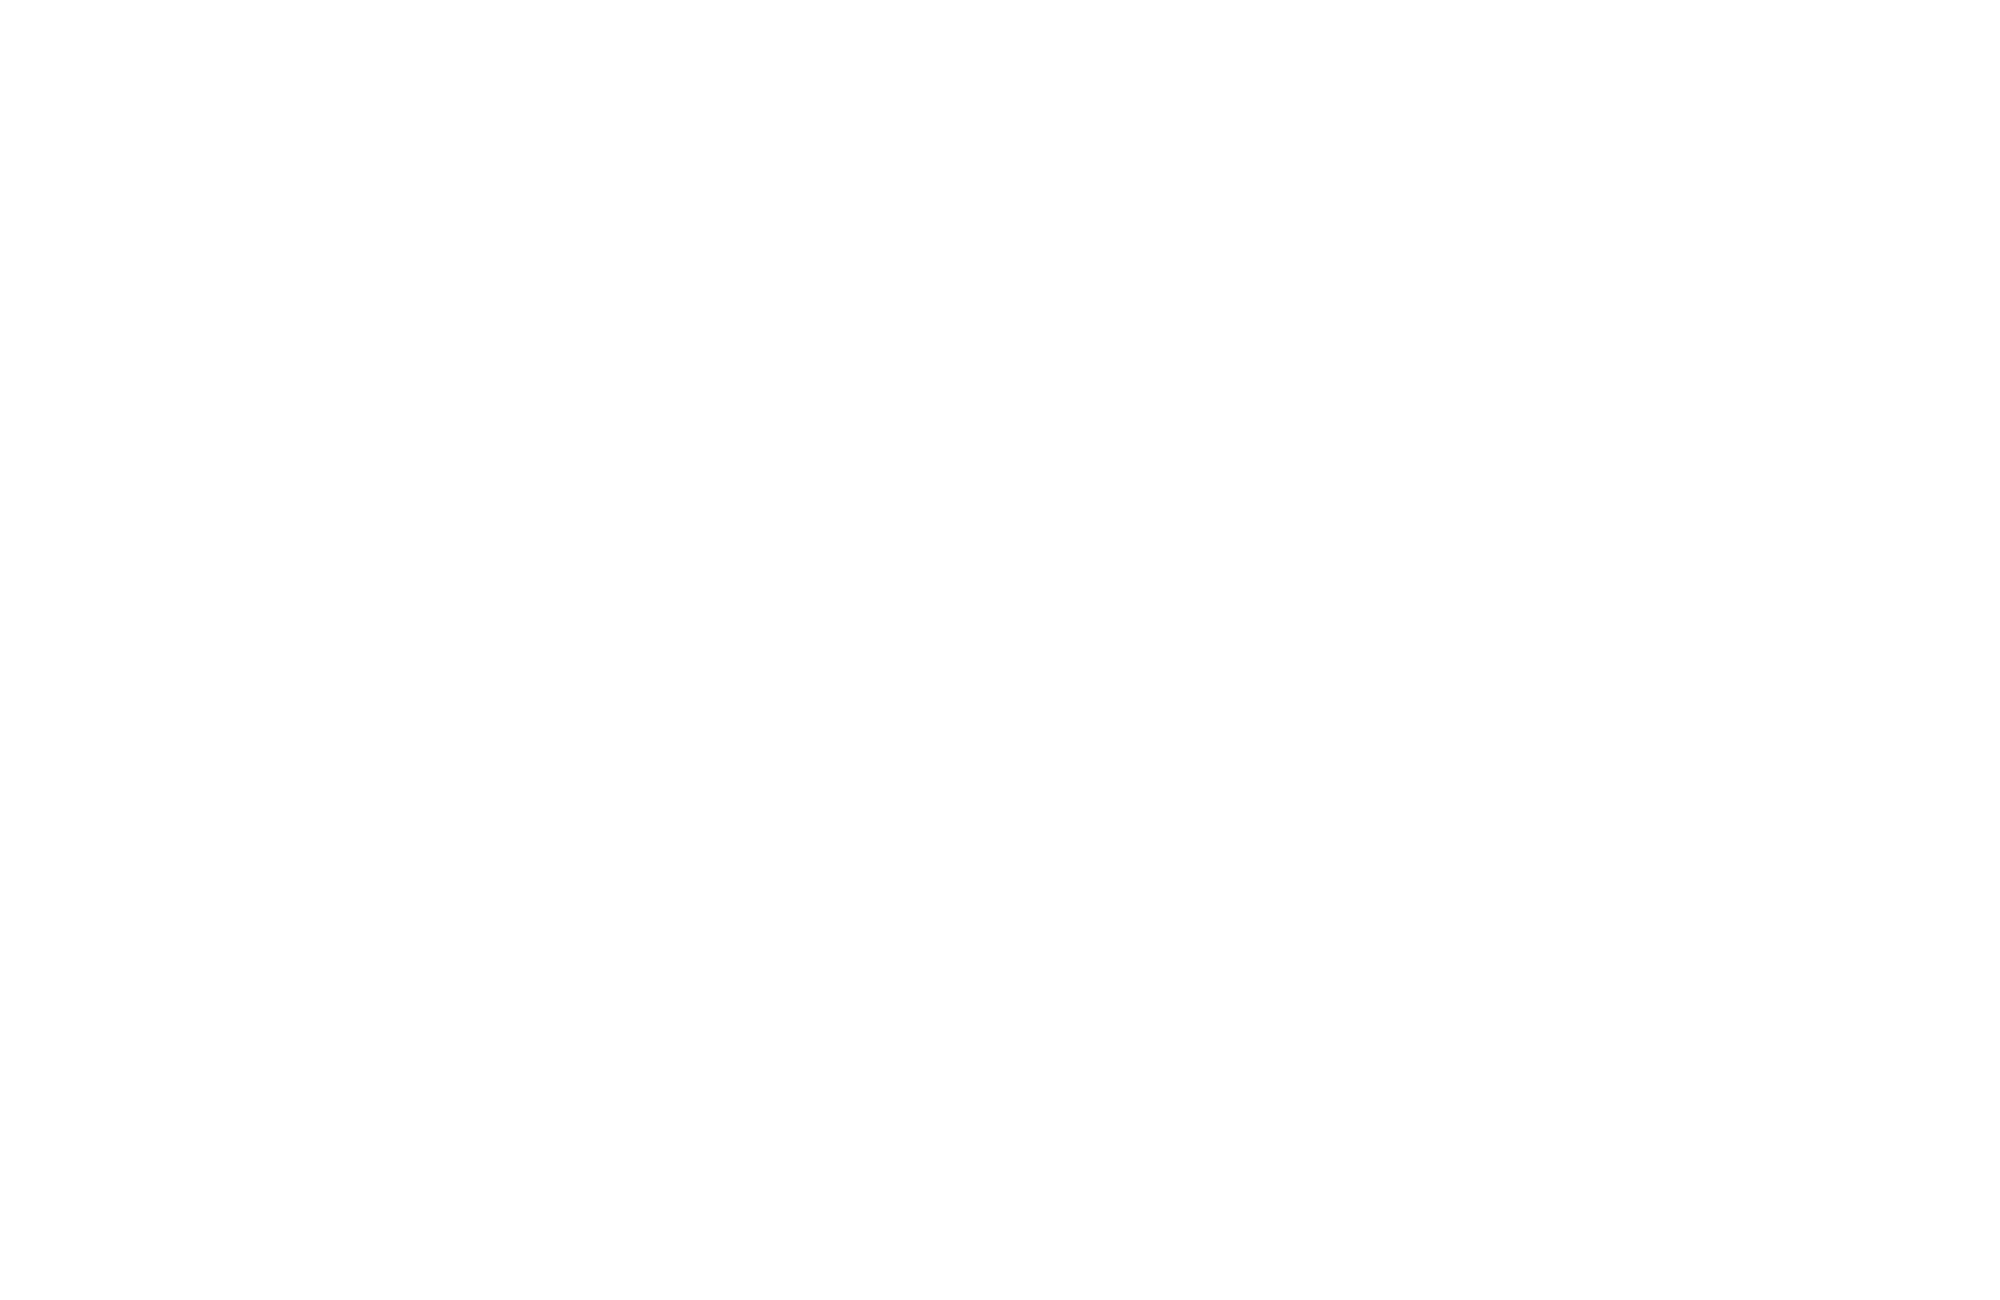 23 Restaurant Services Locations